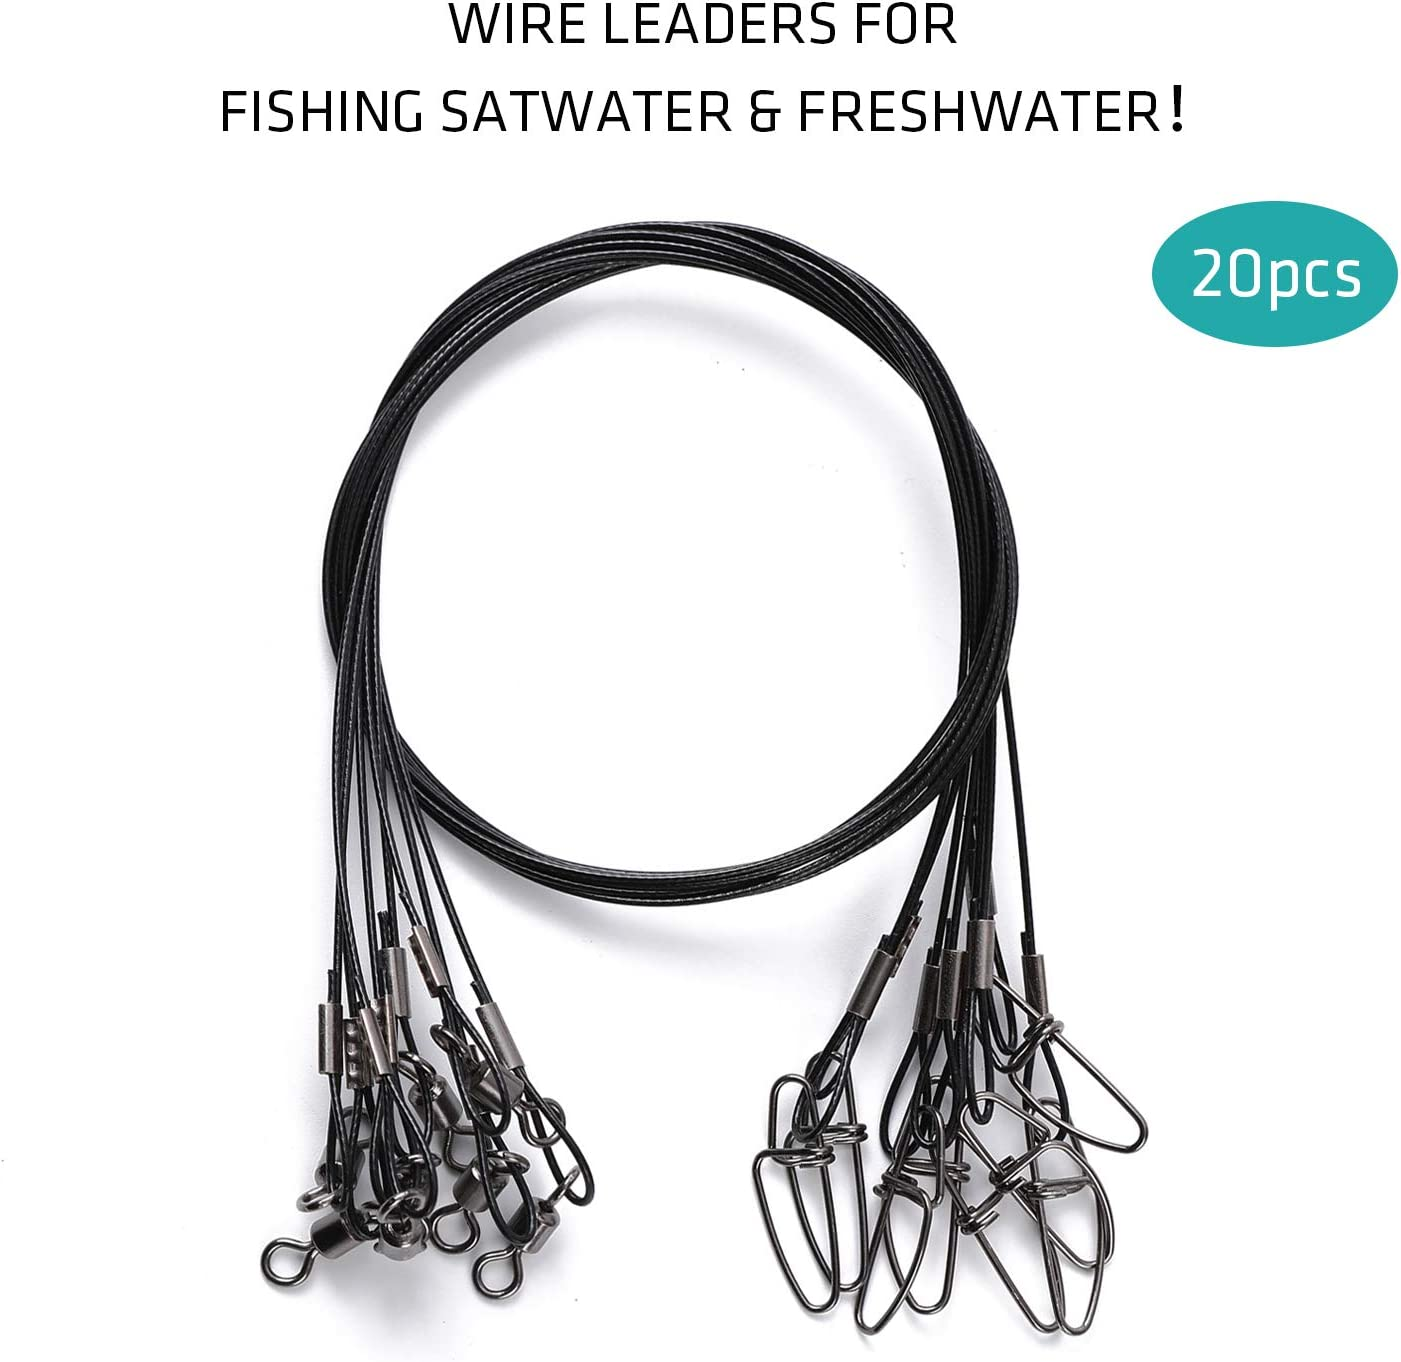 20 Pcs LPATTERN Fishing Wire Leaders Fishing Leaders Line with Swivels Kits Snap Connector Tooth Proof Stainless Steel